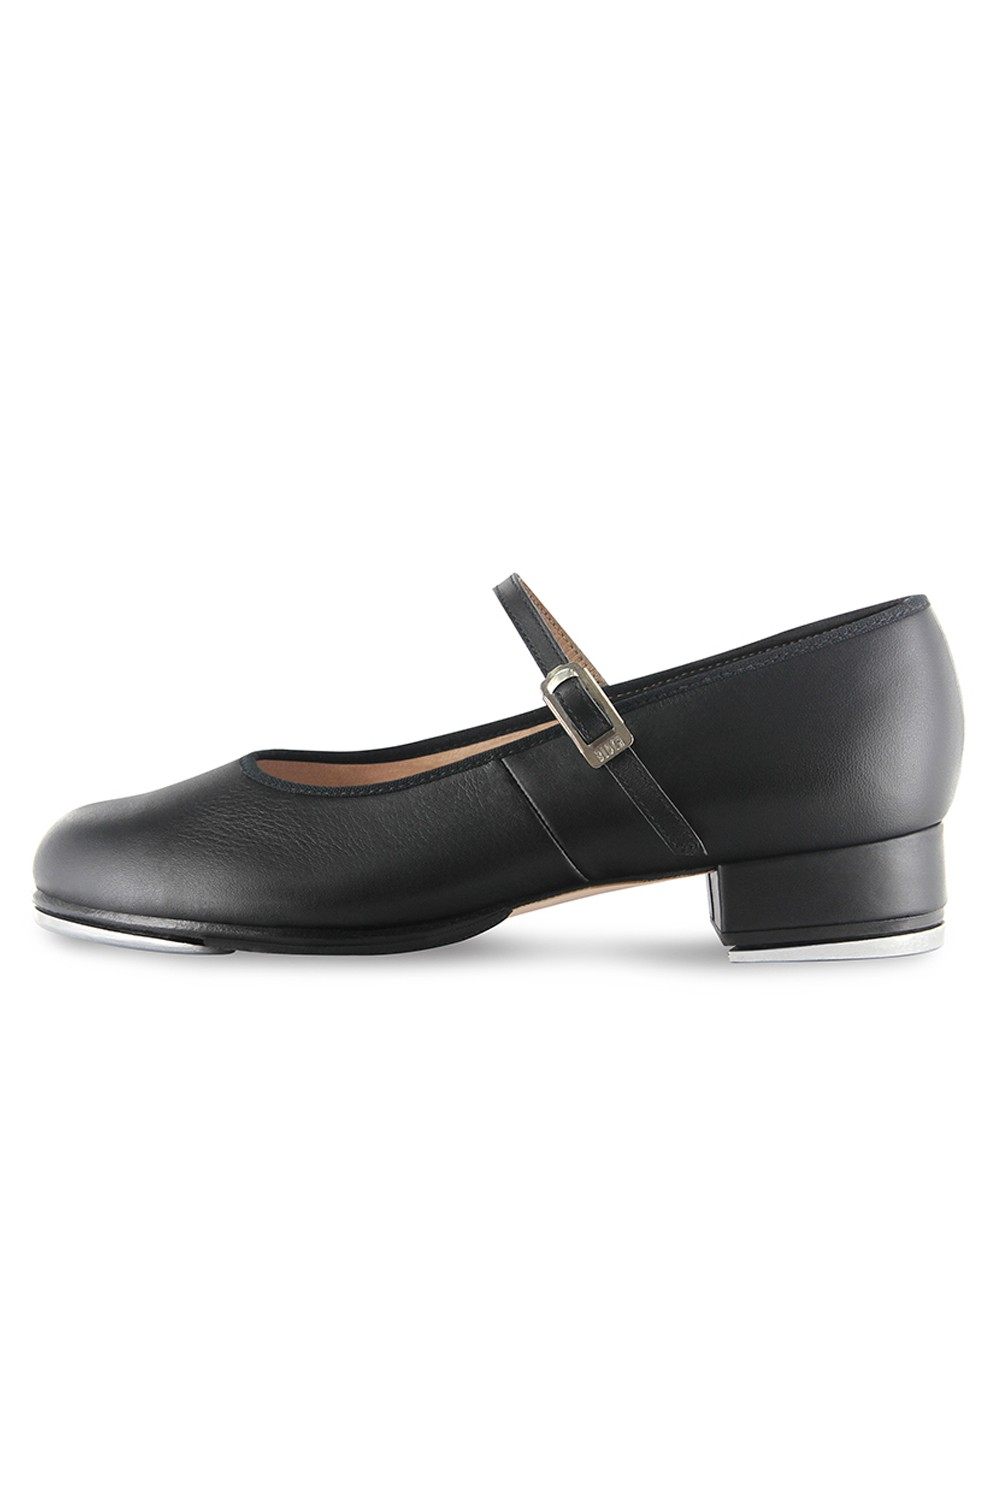 Tap-on   Women's Tap Shoes